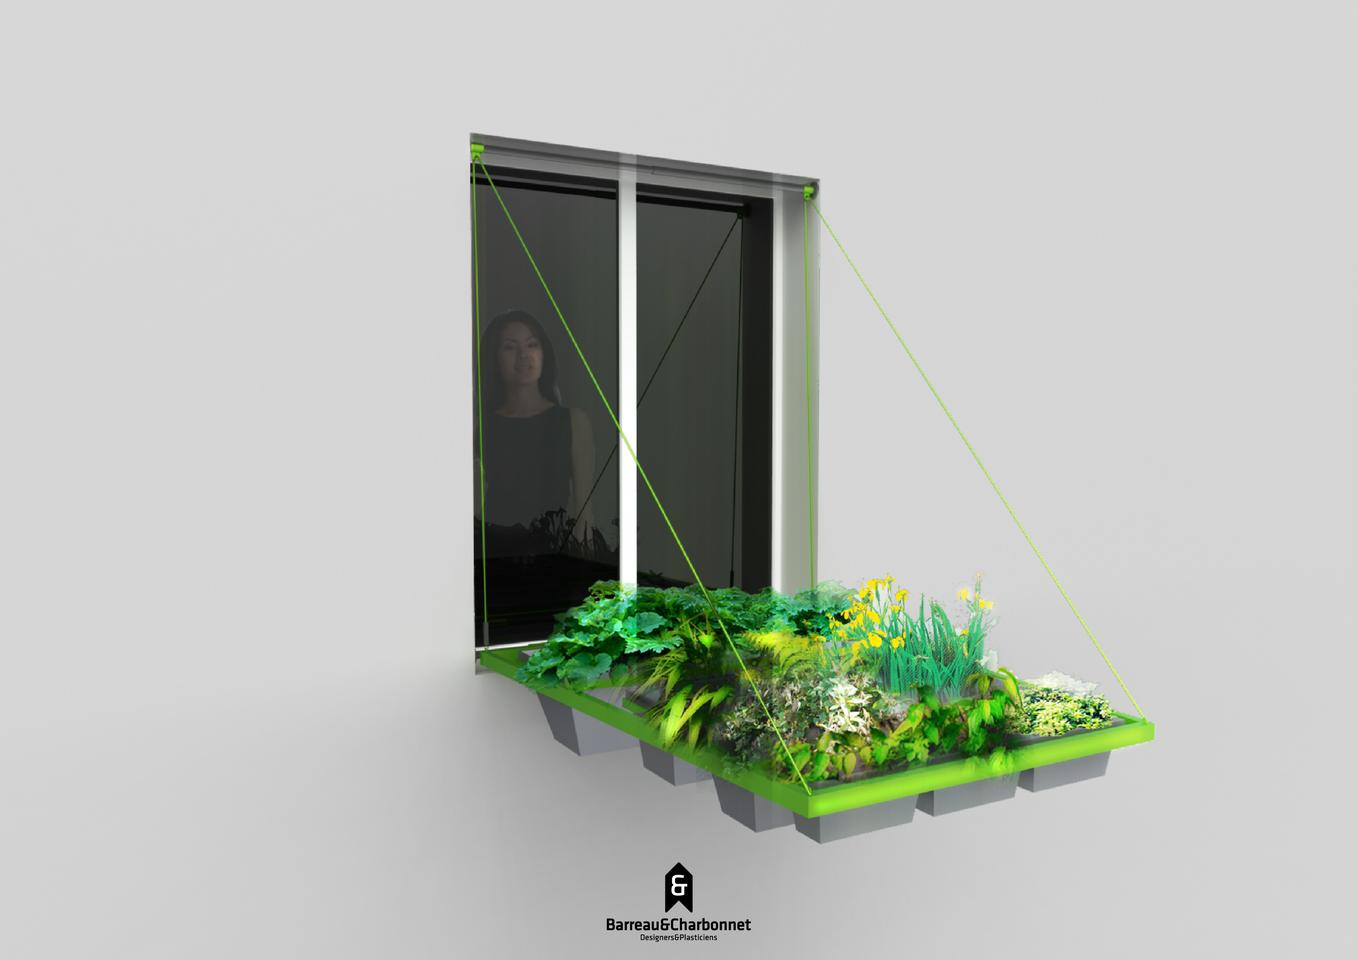 Volet végétal is fitted to the outside window frame and when lowered, gives plants access to light and rain water